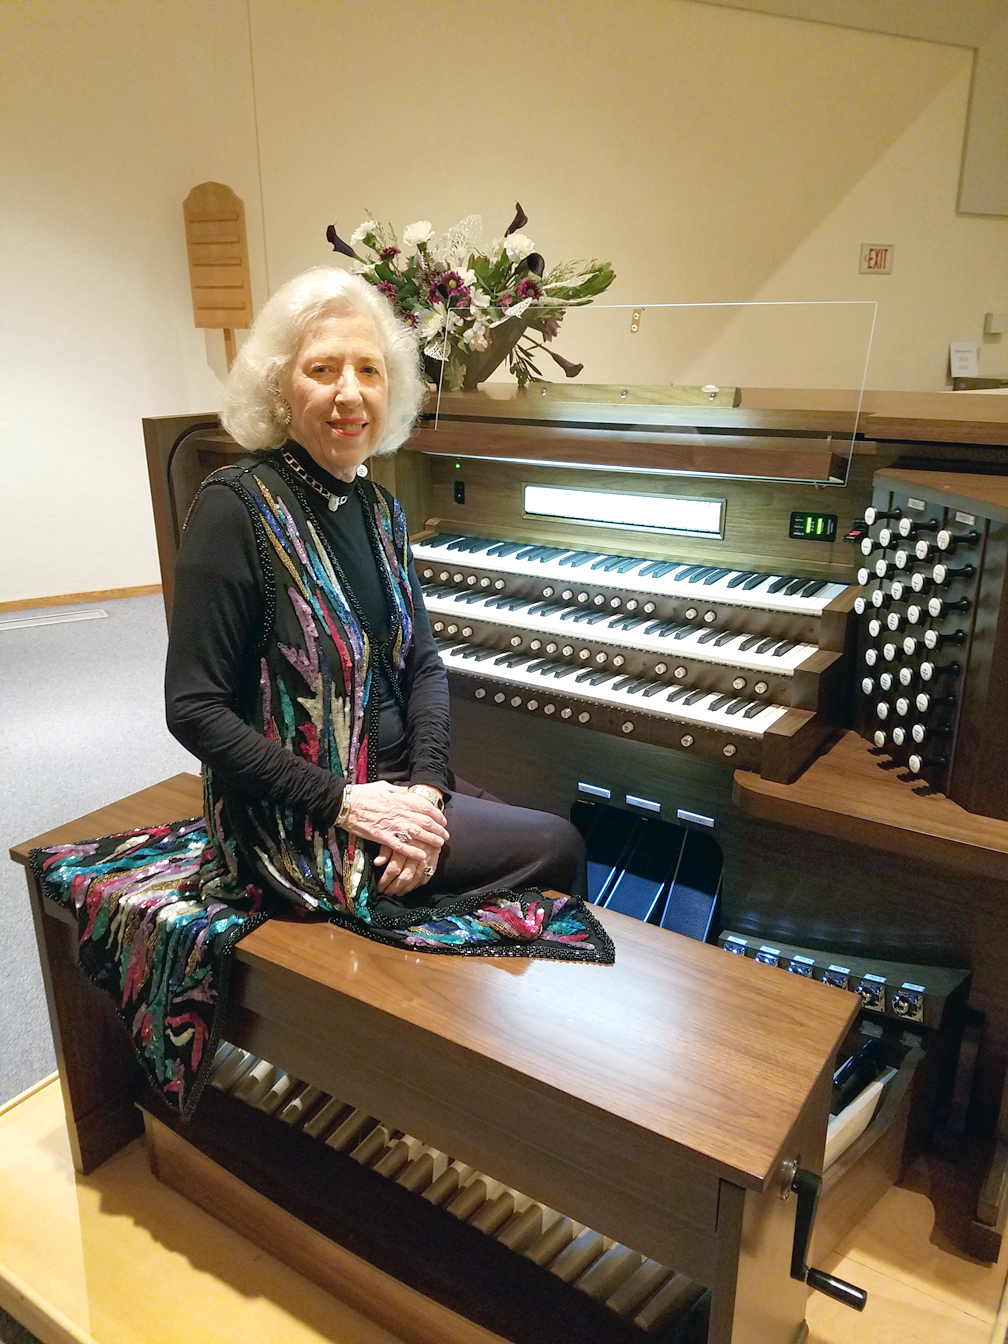 St. Mary's Catholic Church, St. Clairsville, OH - Diane Bish on an Allen 58 Stop Digital Organ